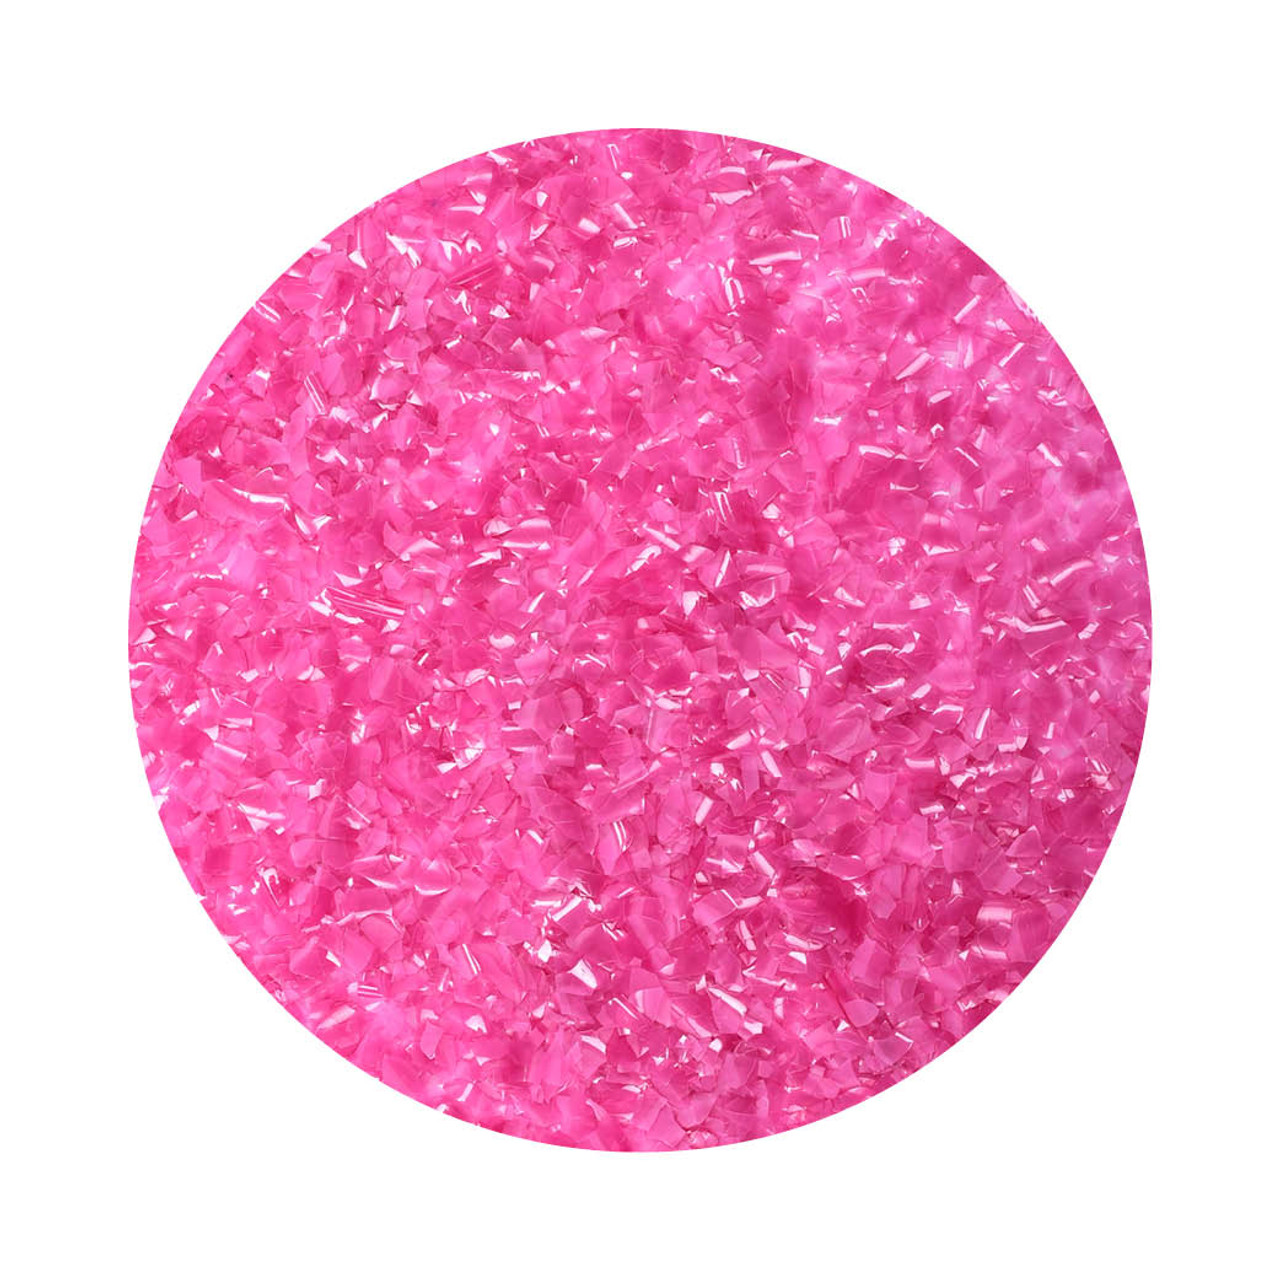 Edible Crafting Glitter - Pink 5g